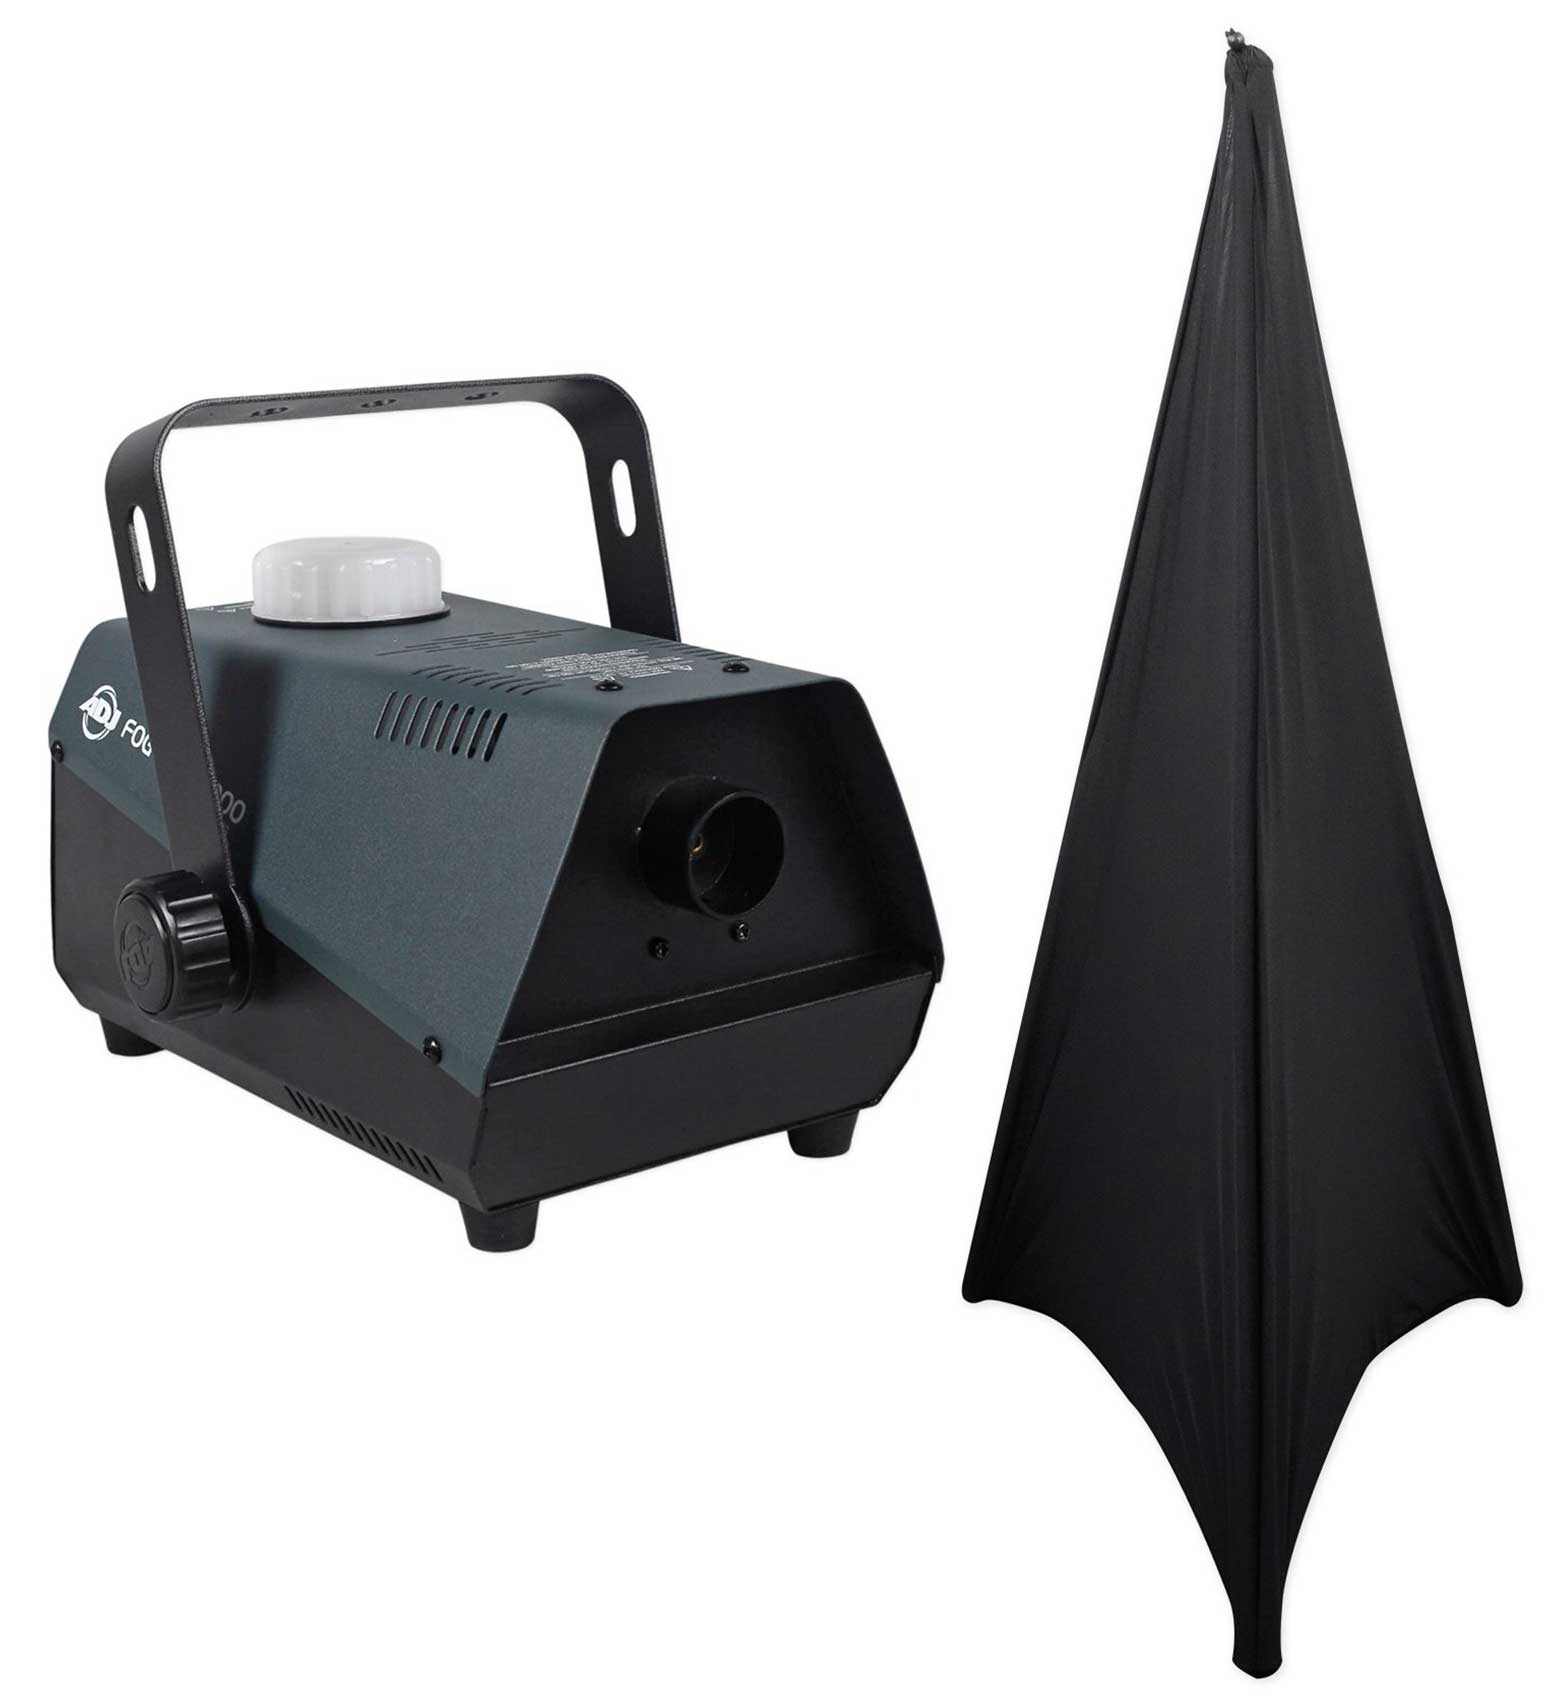 American DJ Fog Fury 1000 650 Watt Fogger Fog Machine w Wired Remote+Free Scrim by American DJ